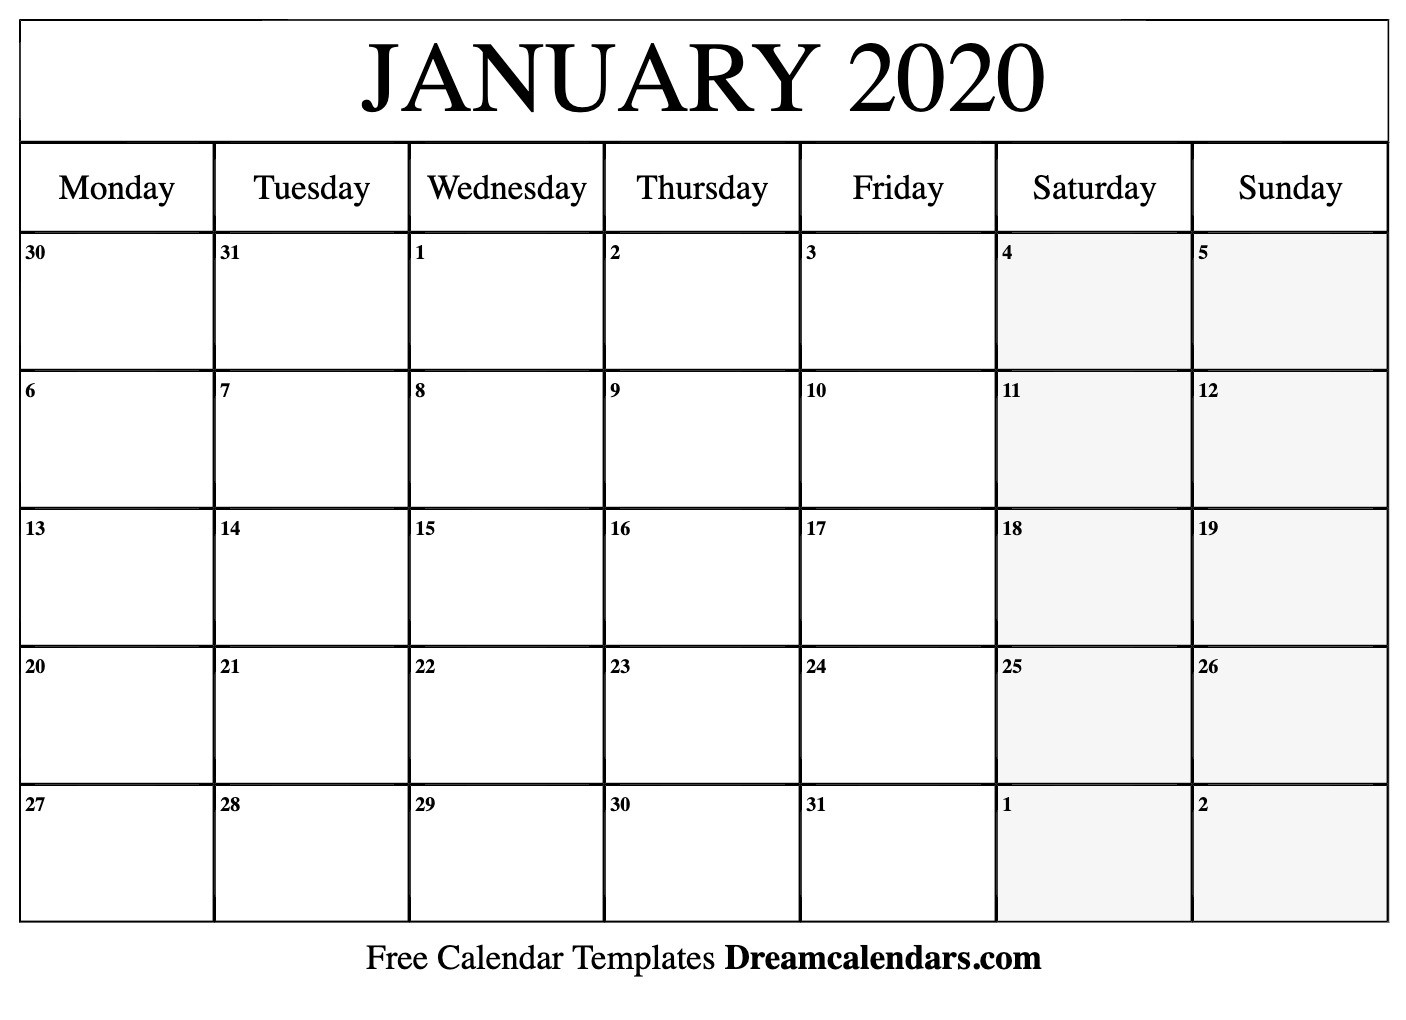 Printable January 2020 Calendar-January 2020 Calendar With Holidays Printable